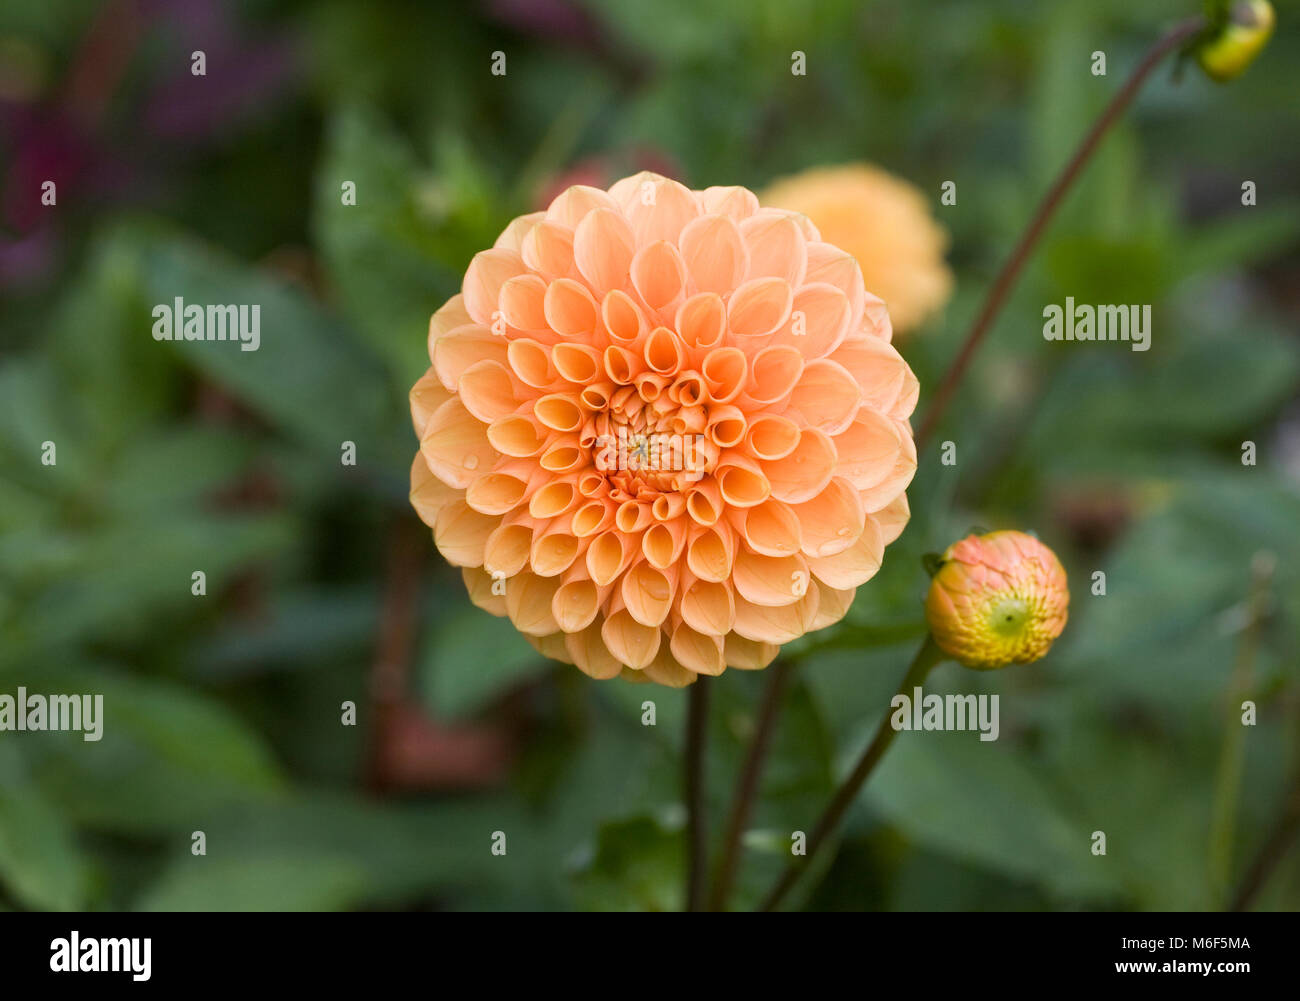 Dahlia 'Apricot Jewel' flowers in late summer. - Stock Image